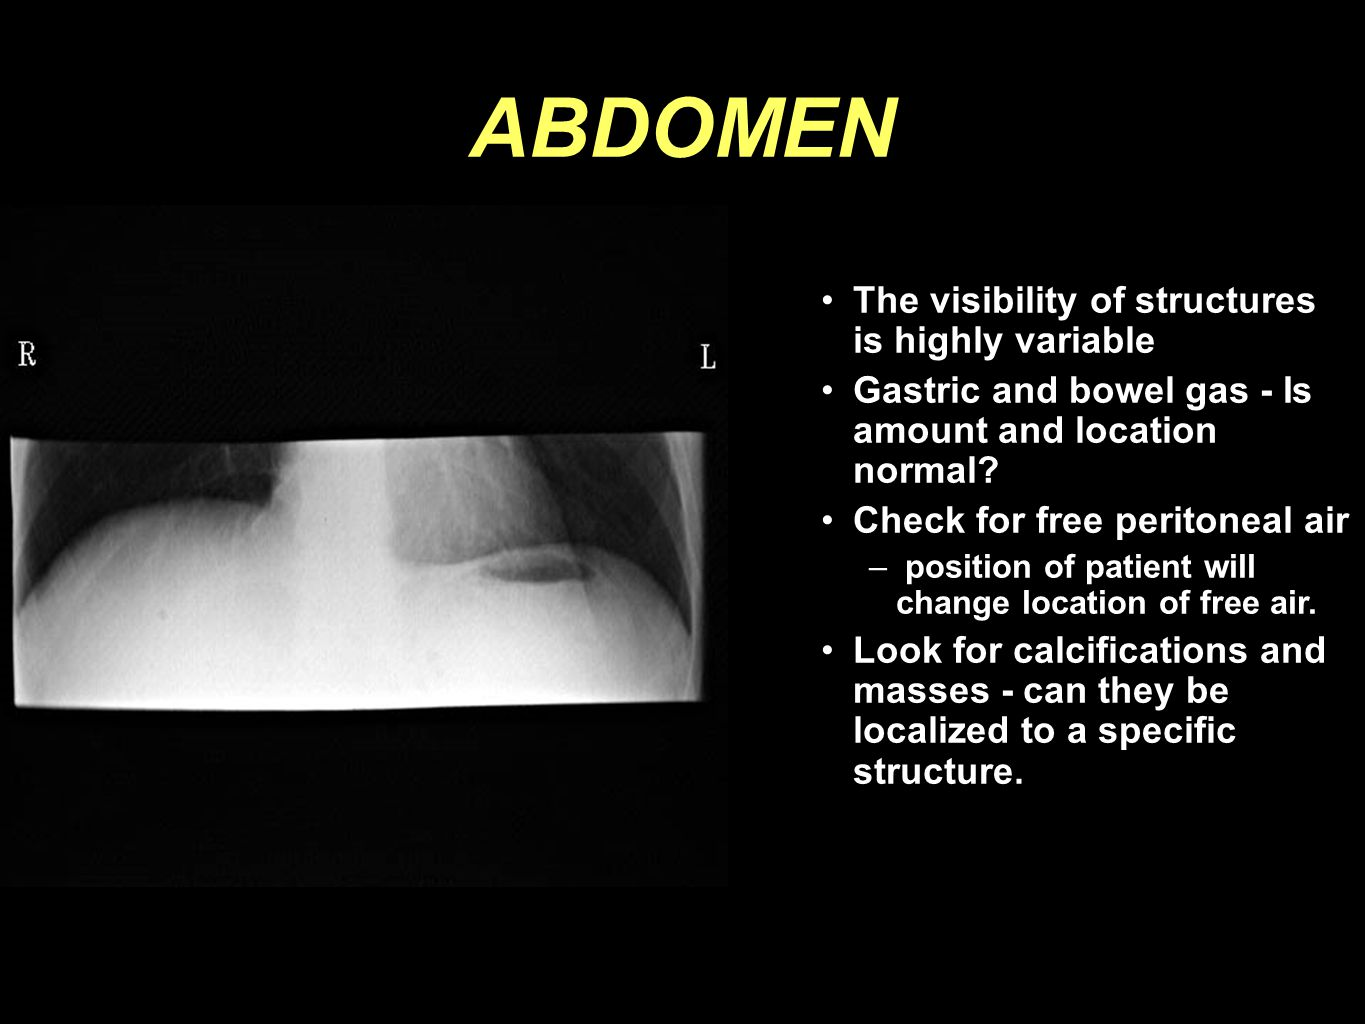 ABDOMEN The visibility of structures is highly variable